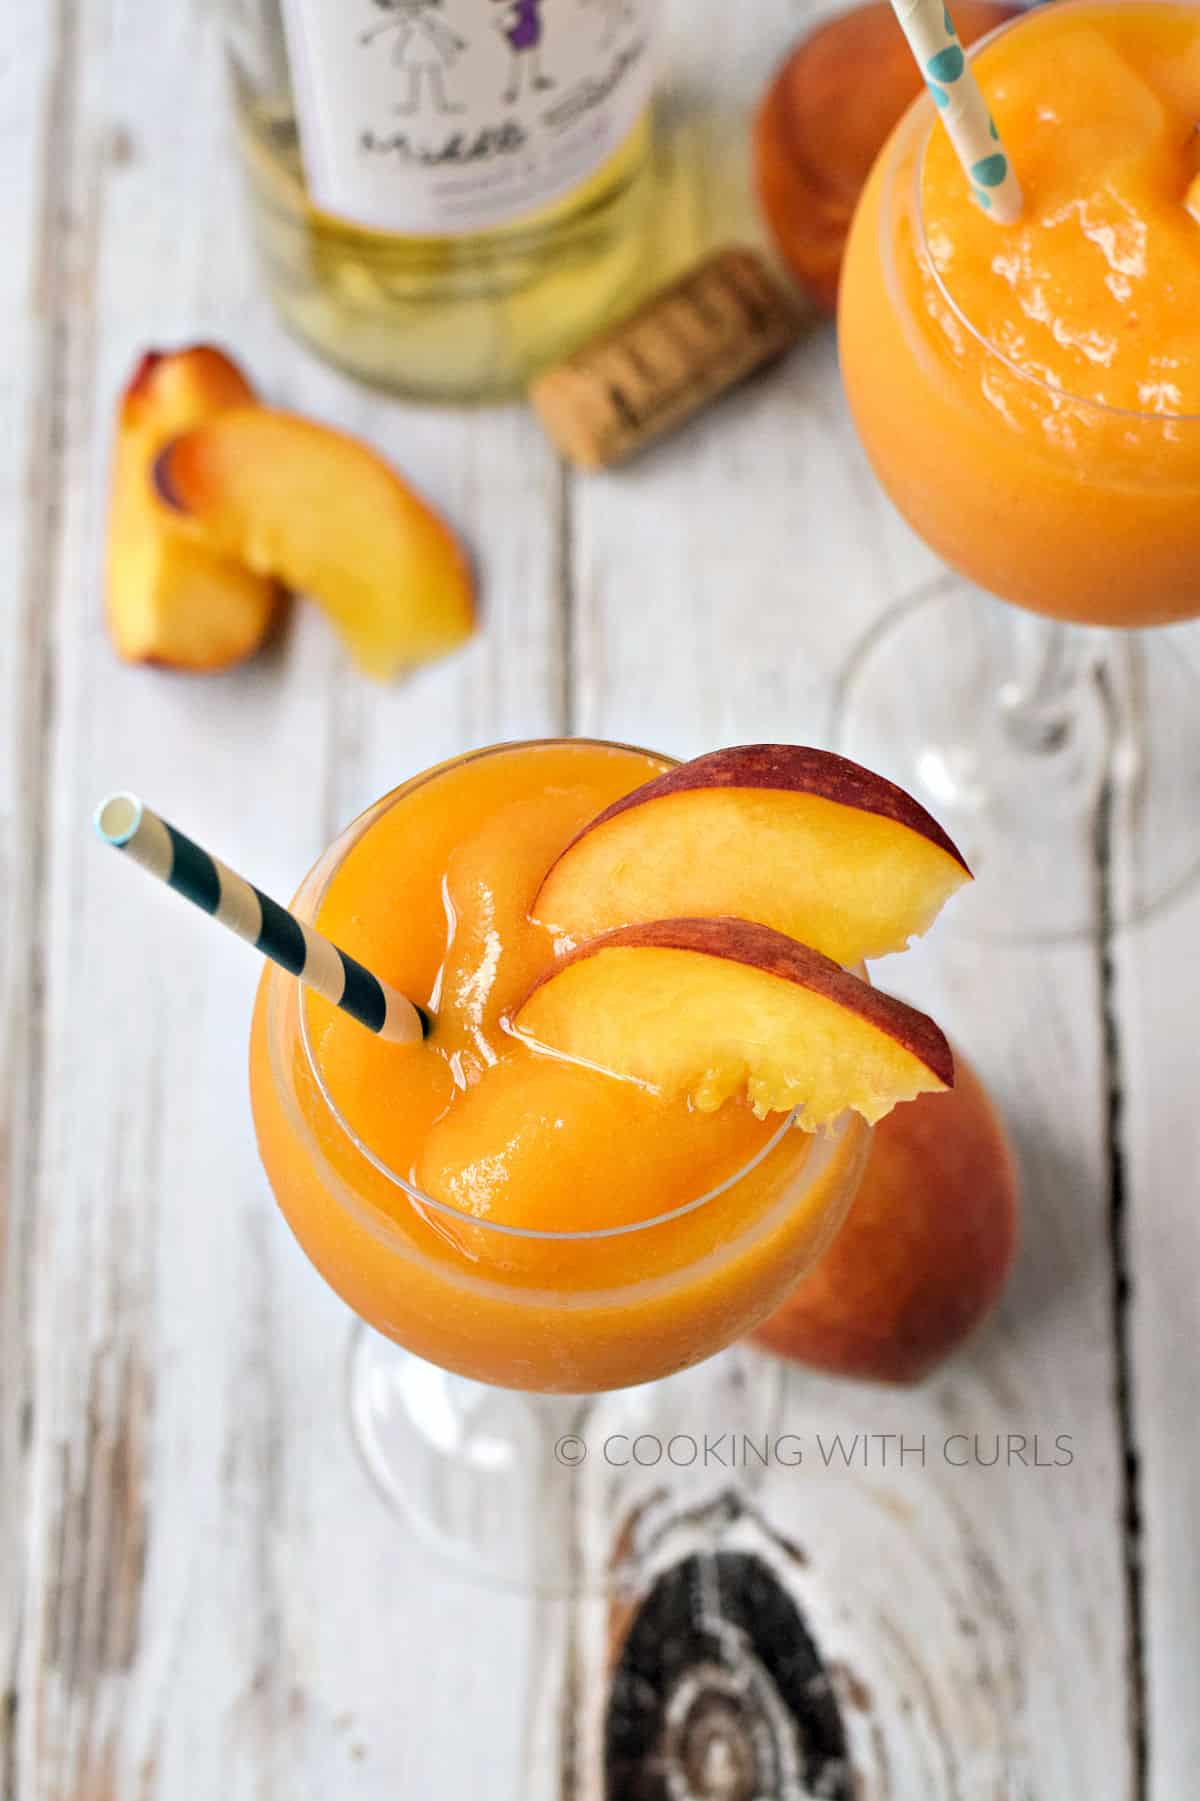 Looking down on two wine glasses filled with blended peaches and wine smoothie garnished with peach slices and a bottle of white wine in the background.